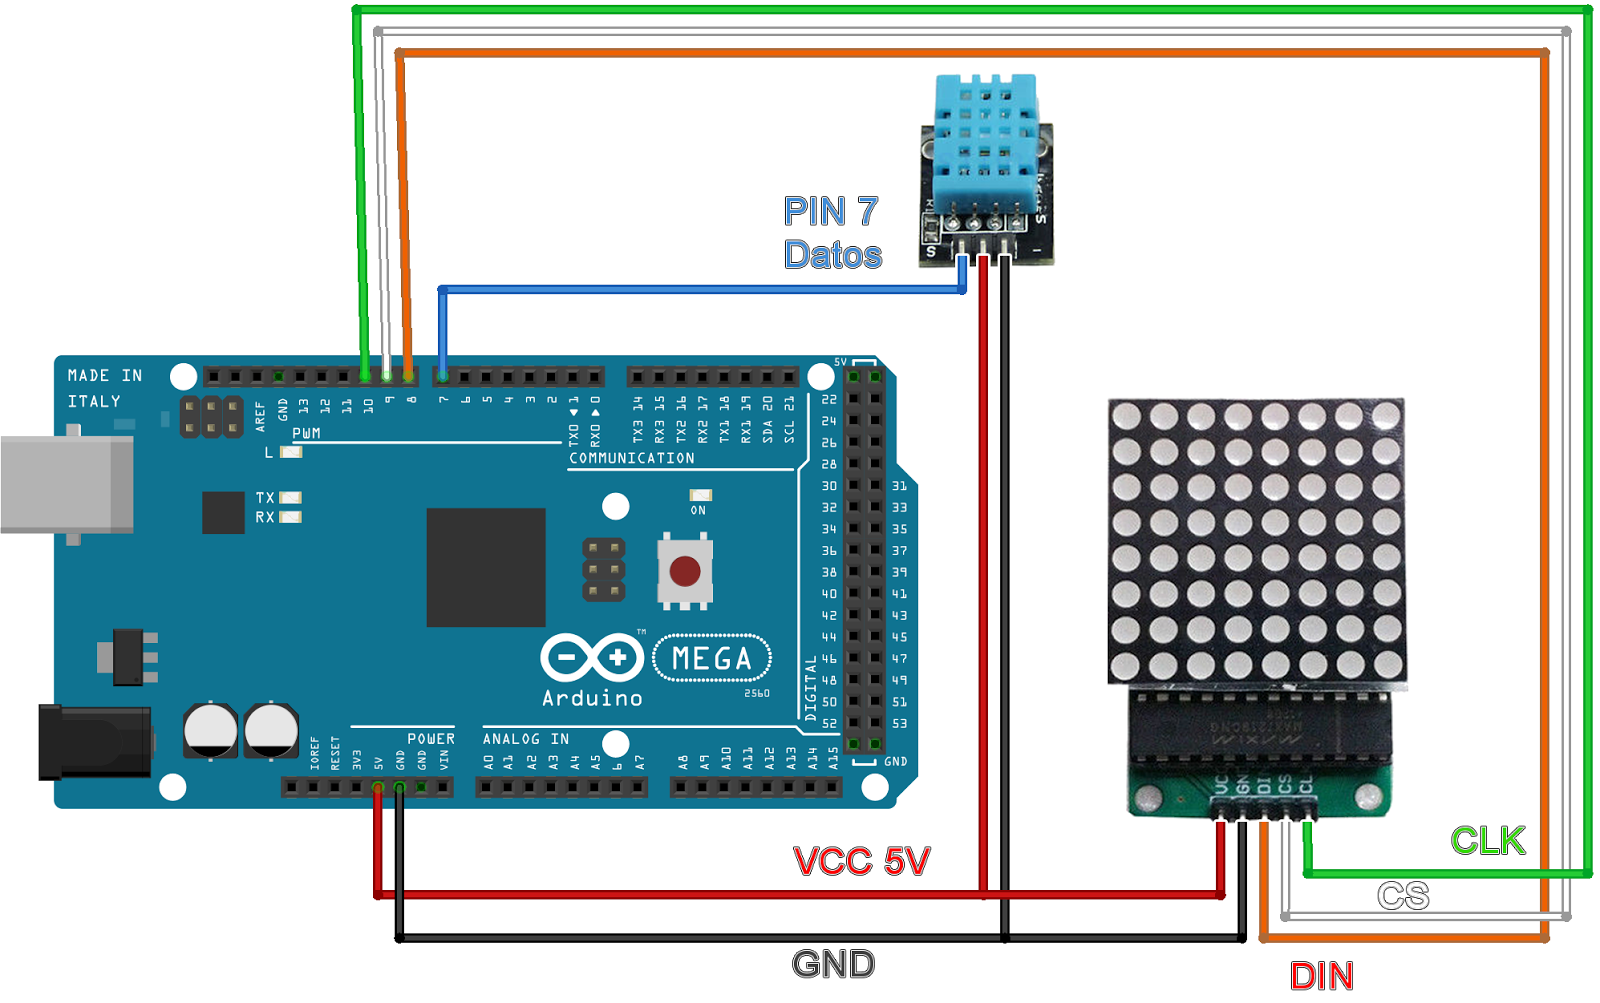 RA8875 - 7 inch display with Arduino mega - Index page